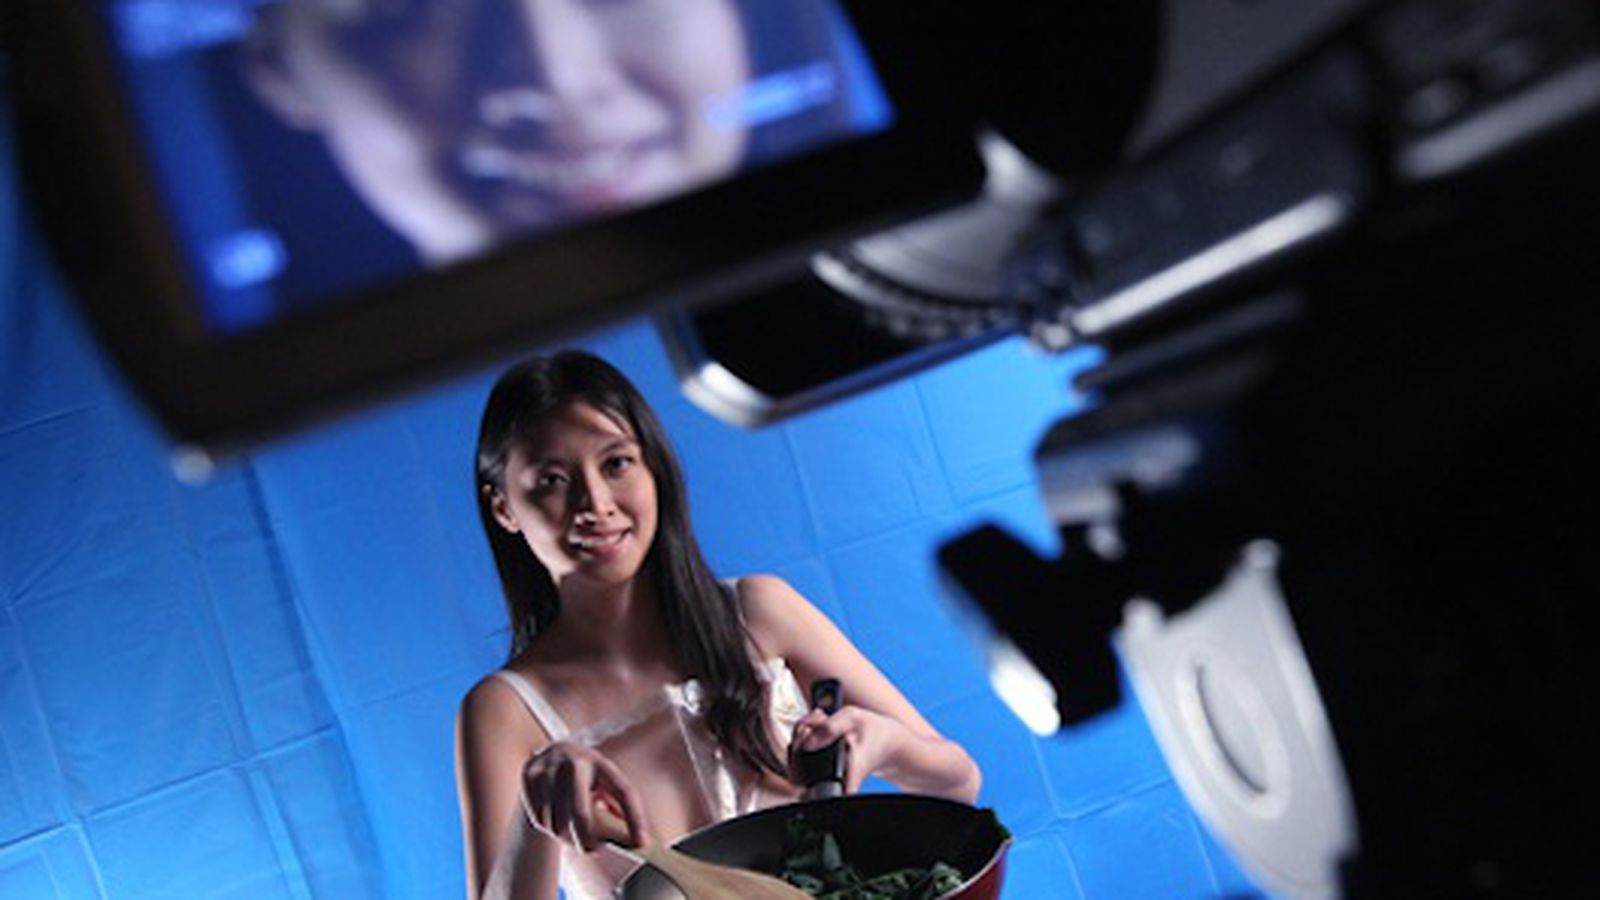 Naked Lady Cooking Show Coming to Hong Kong - Eater